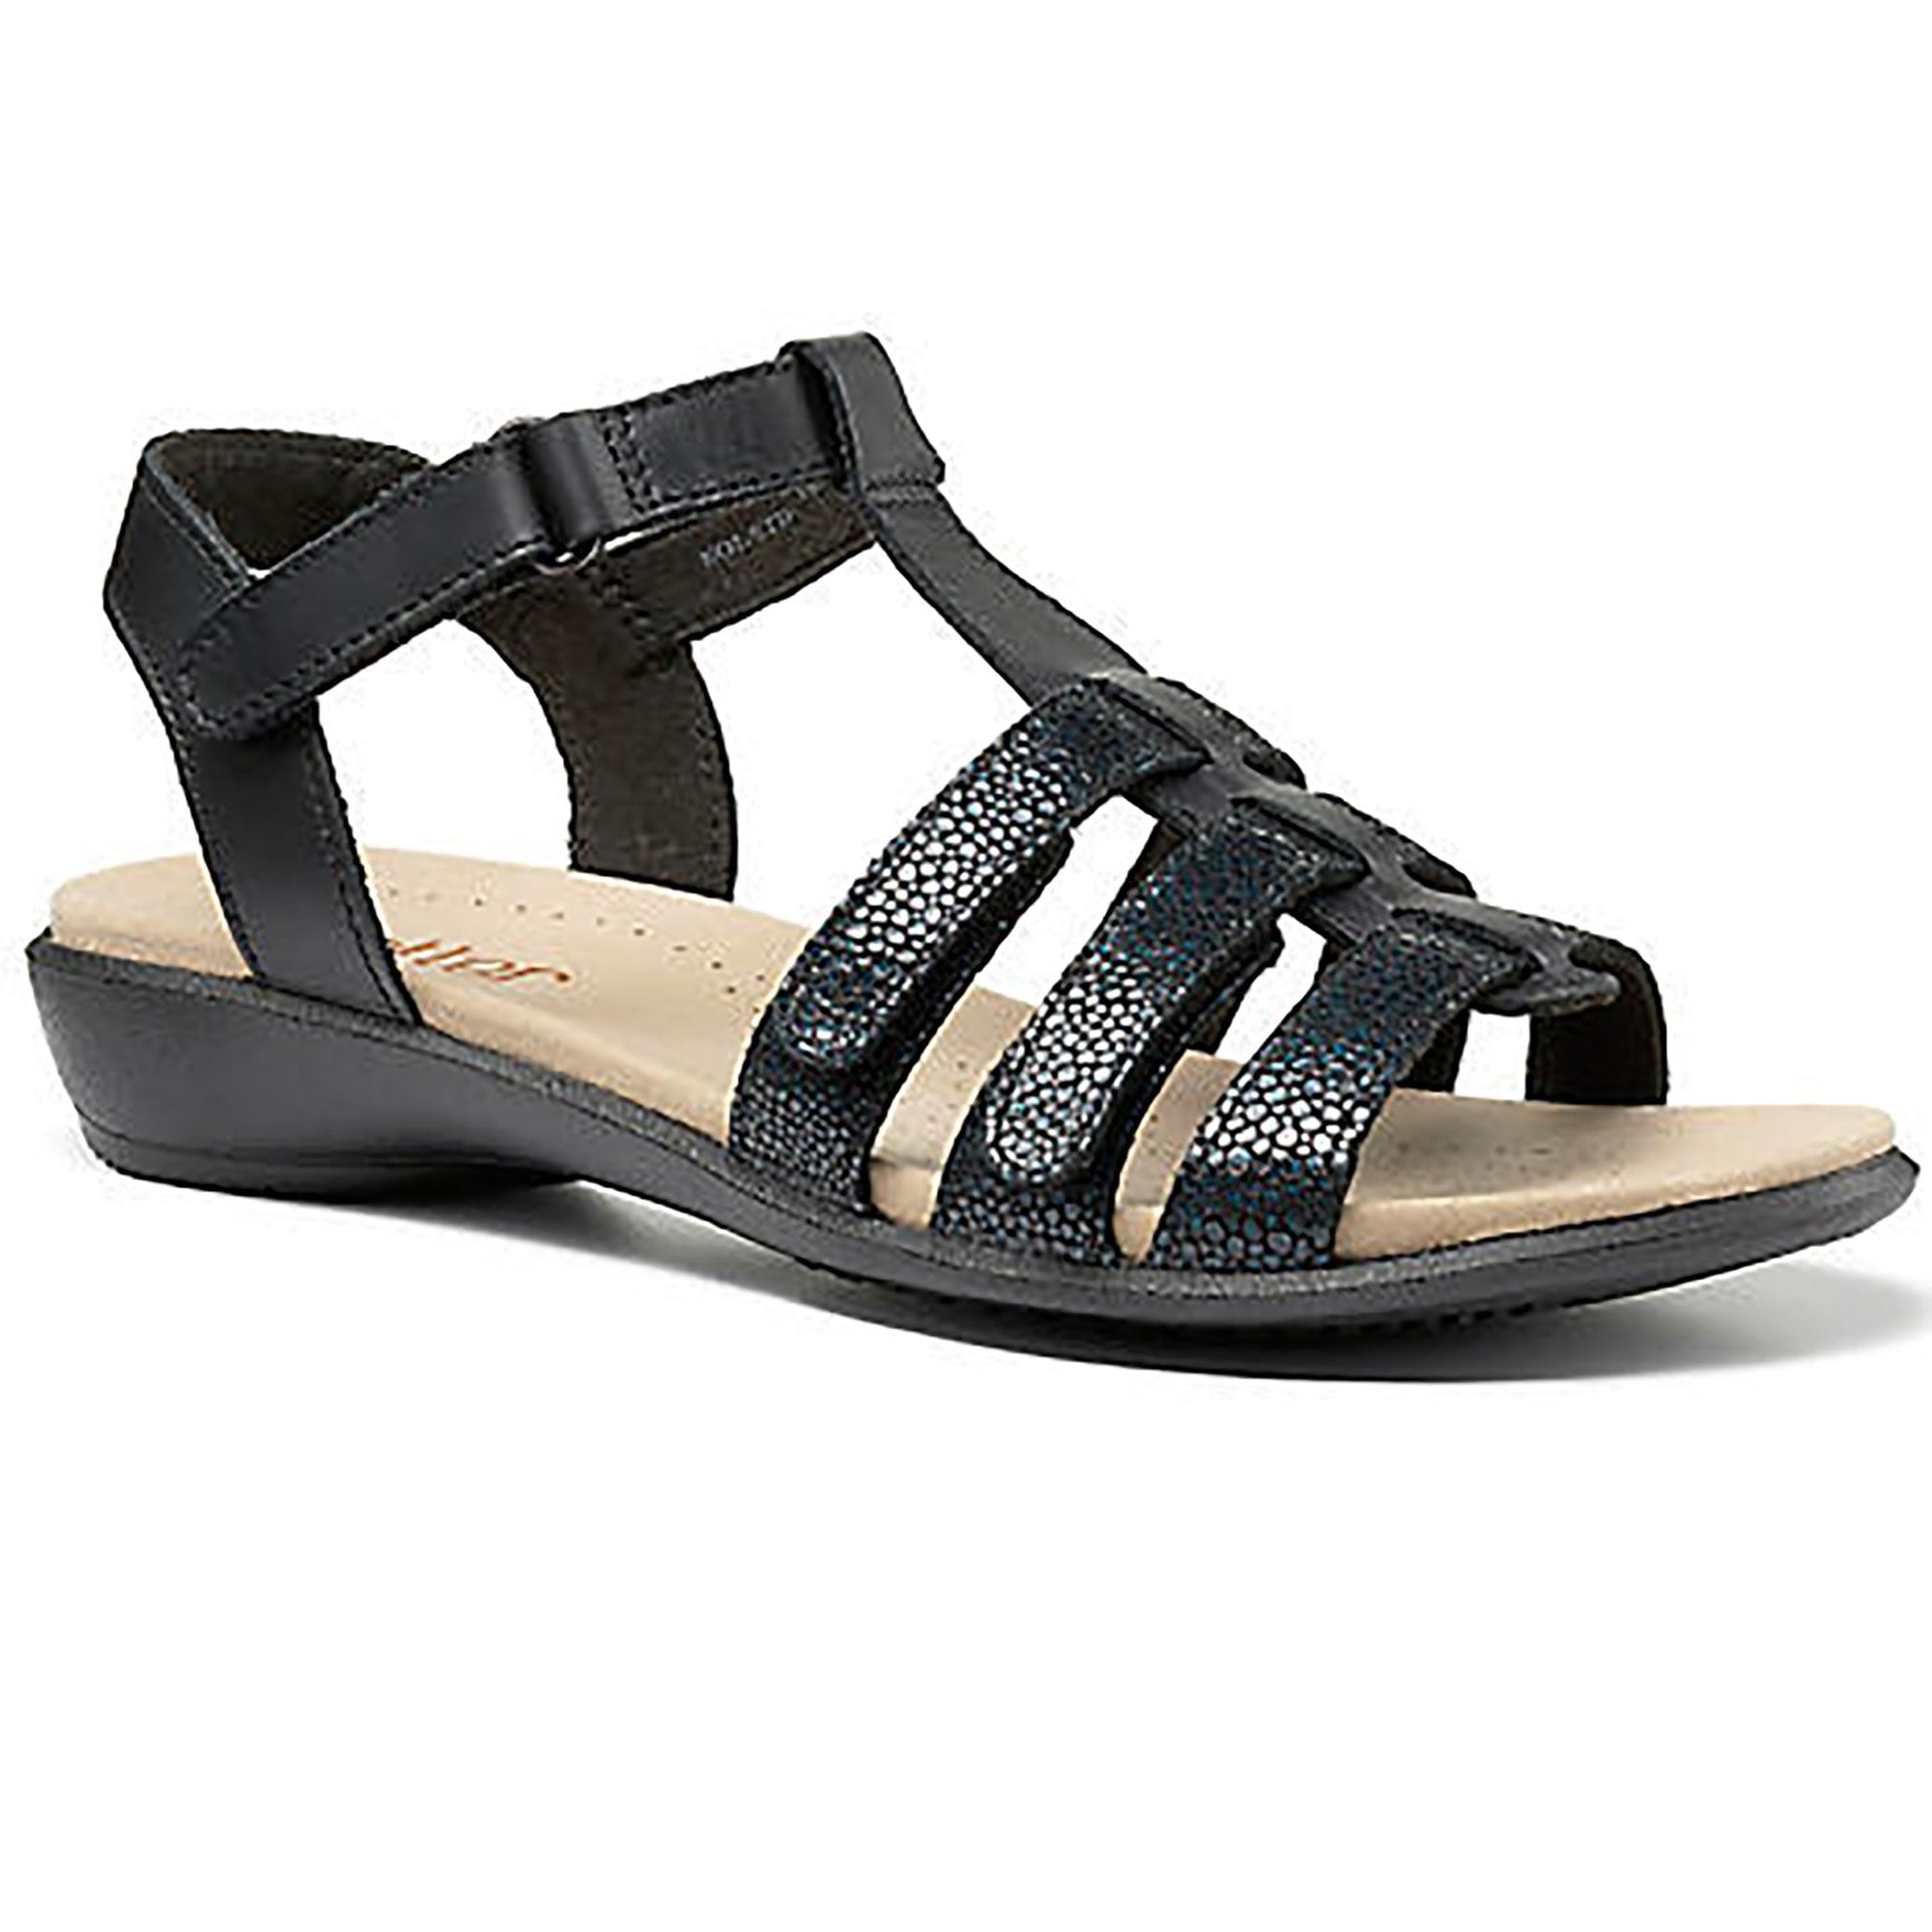 Hotter SOL EXF Wide Fit Sandal - Womens